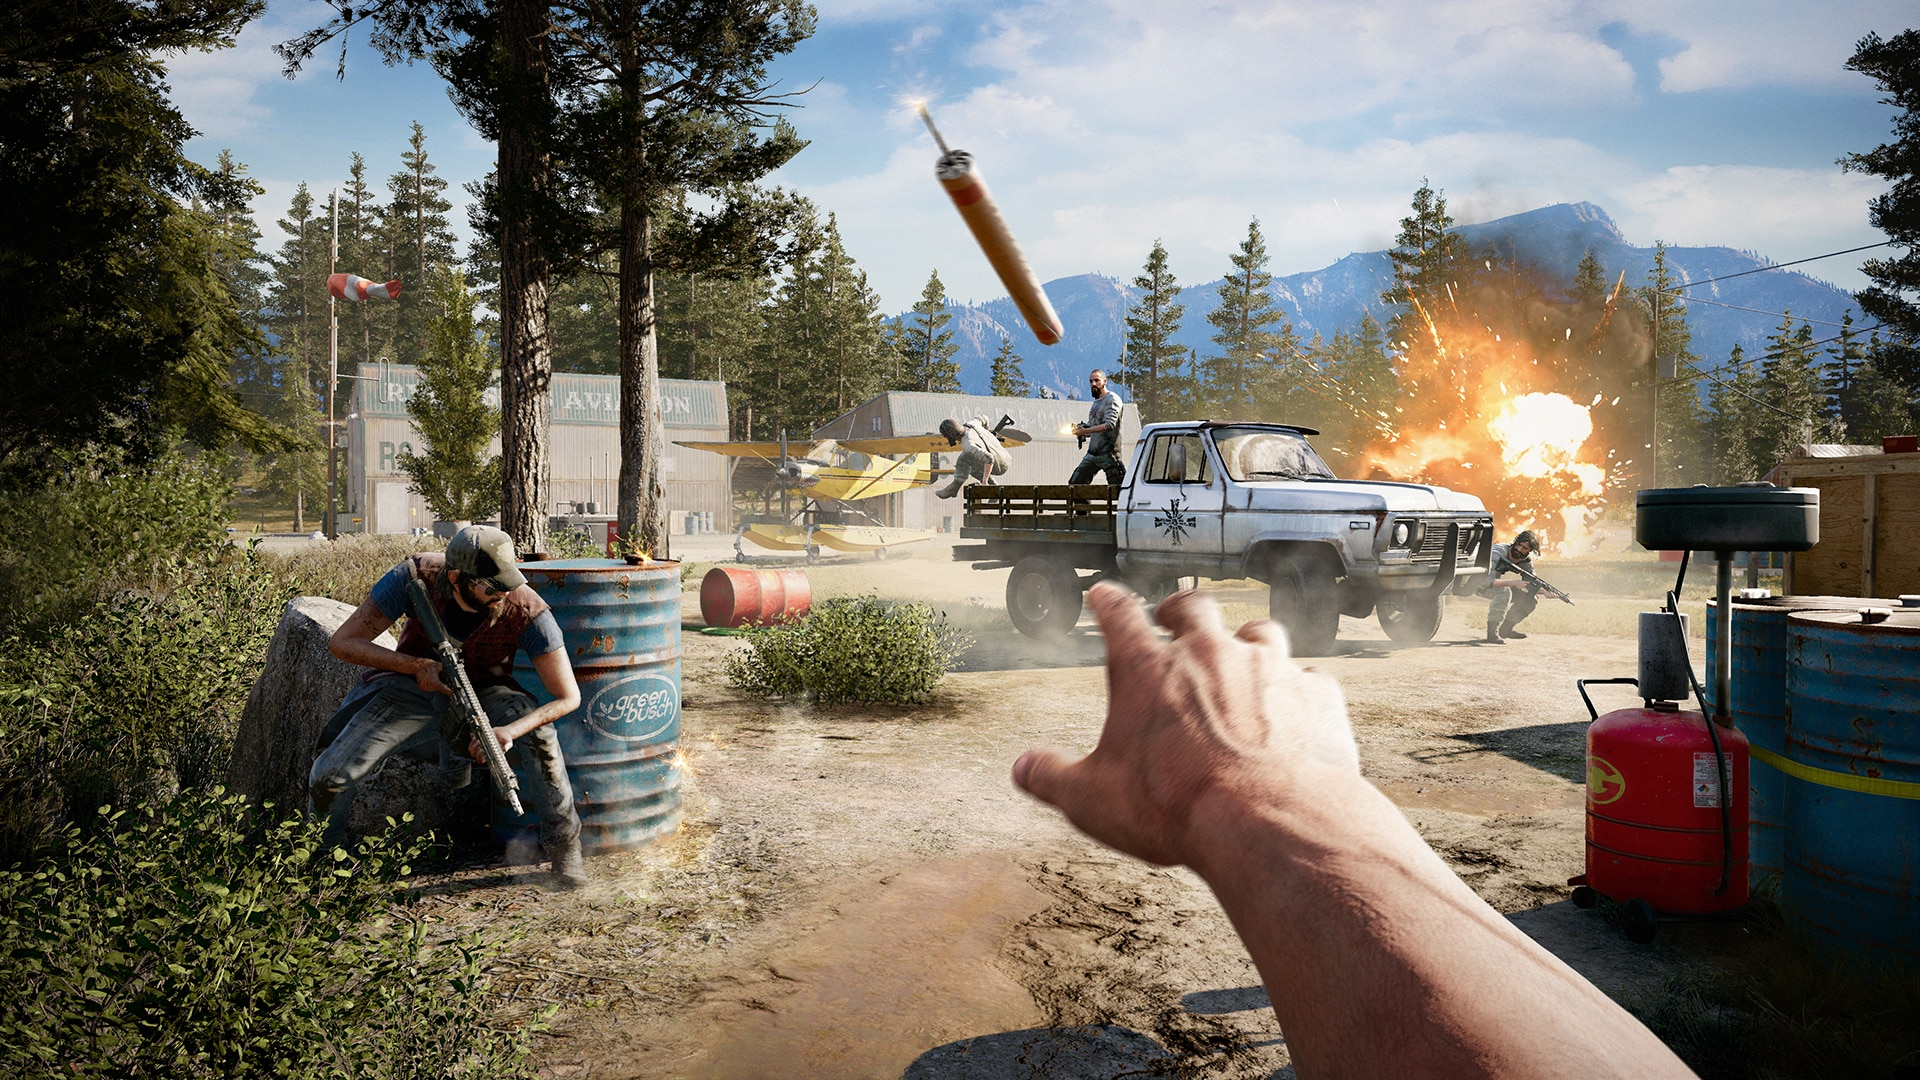 Far Cry 5 has microtransactions but not loot boxes